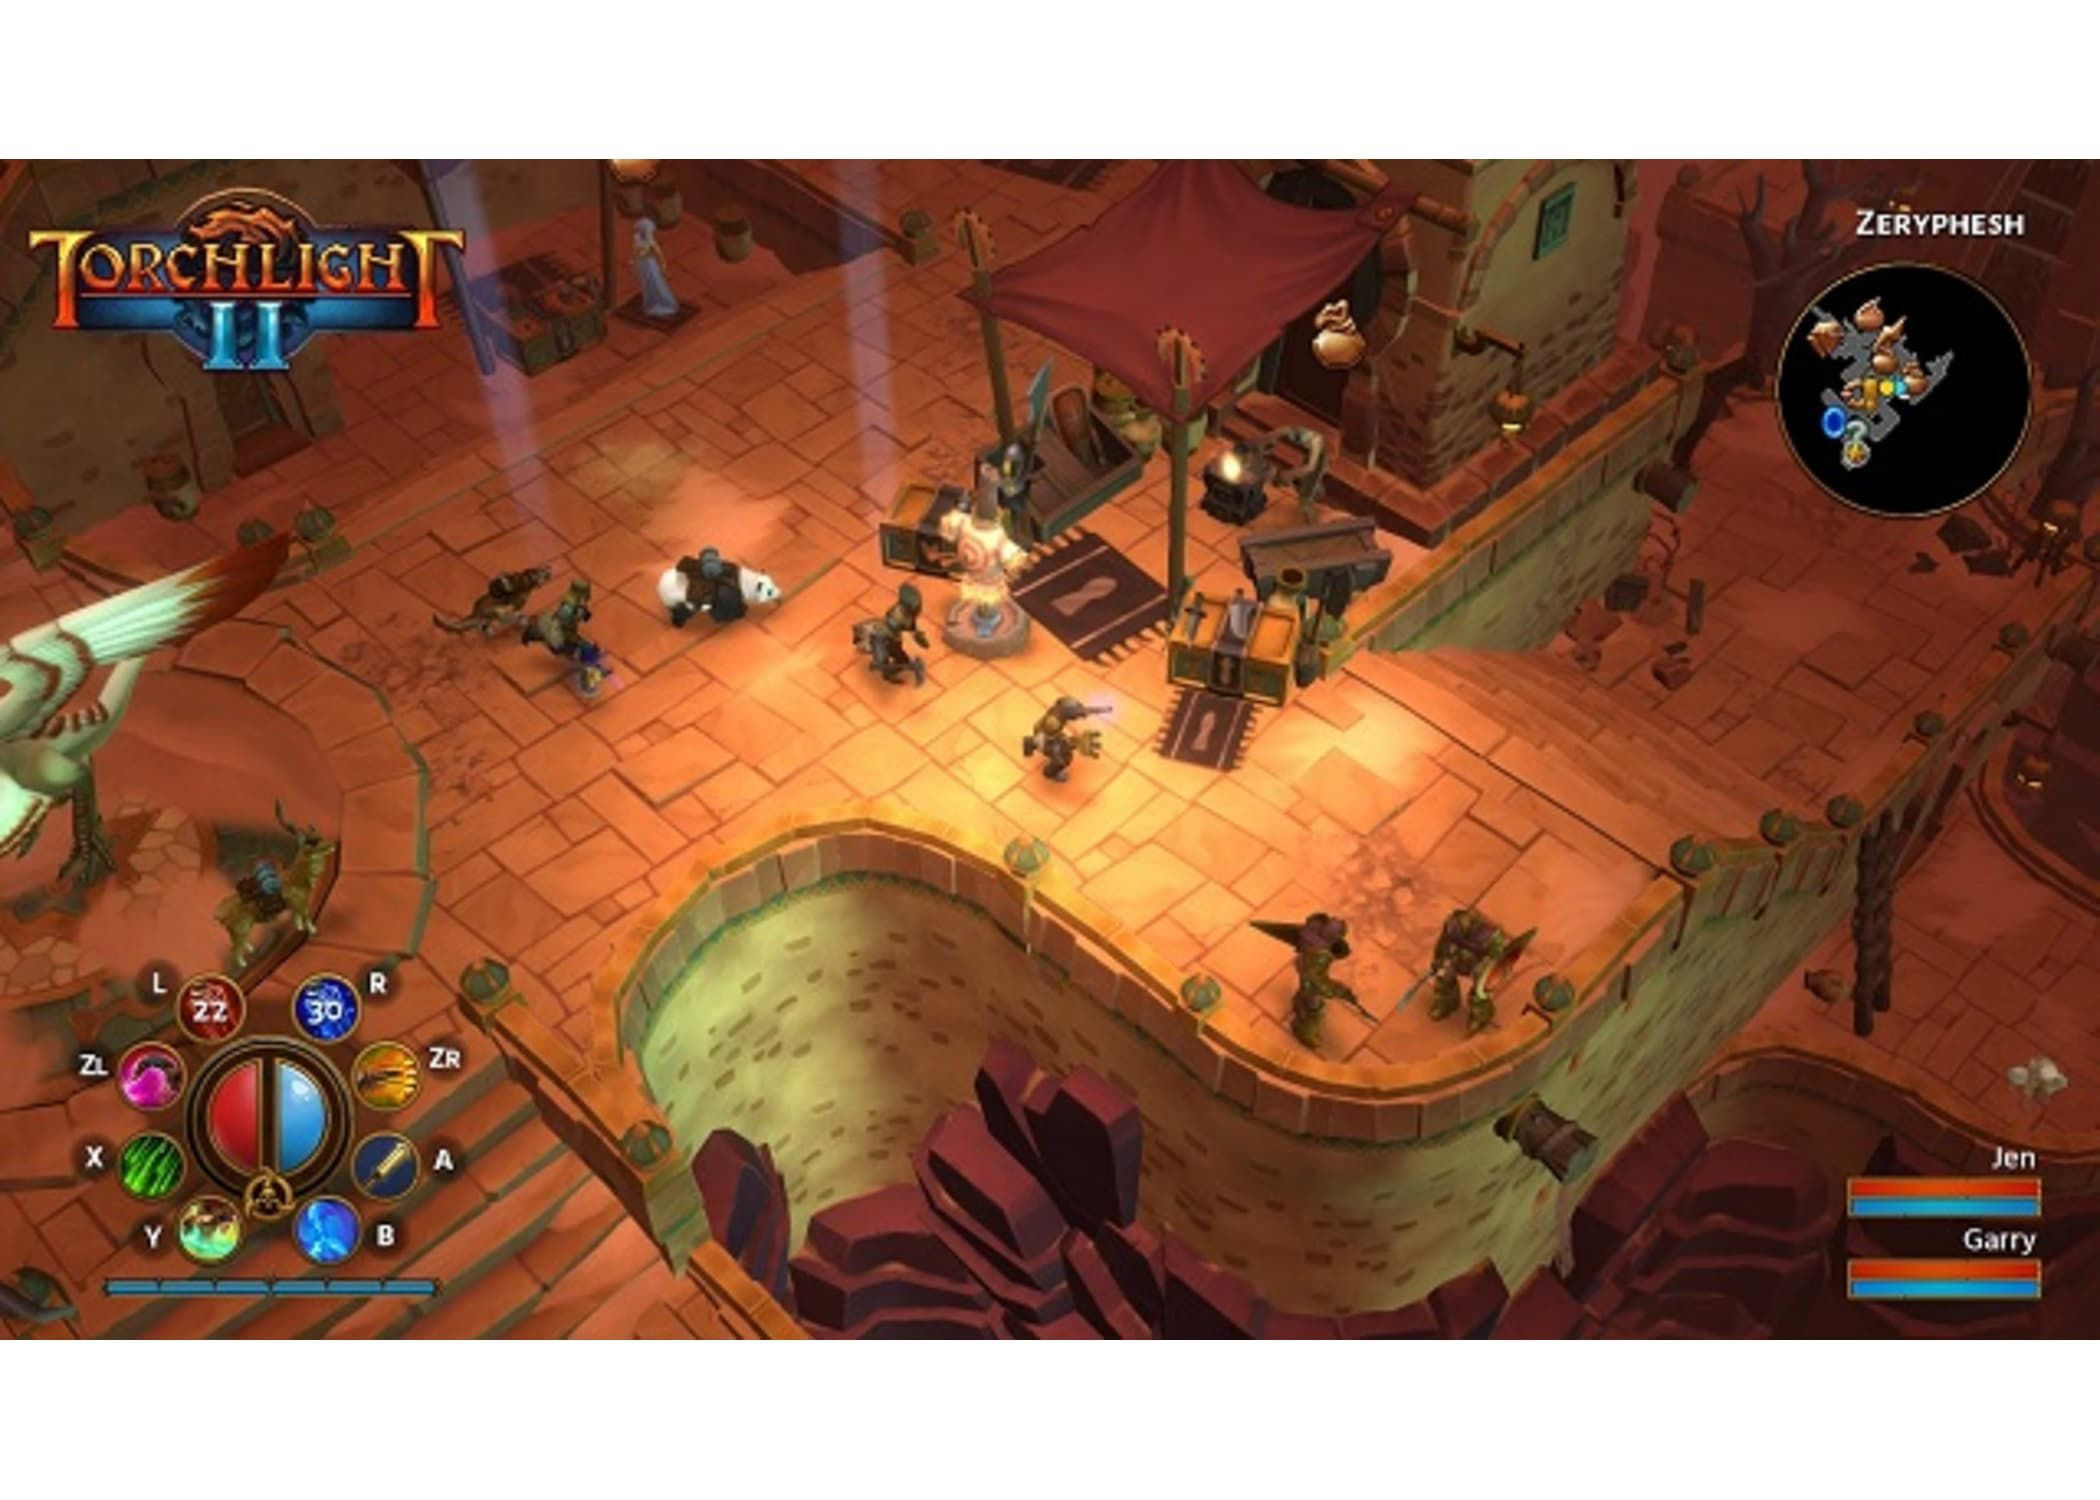 Buy Torchlight 2 On Xbox One Game Affiliate Aff Torchlight Buy Game Xbox In 2020 See Games Torchlight 2 Xbox One Games